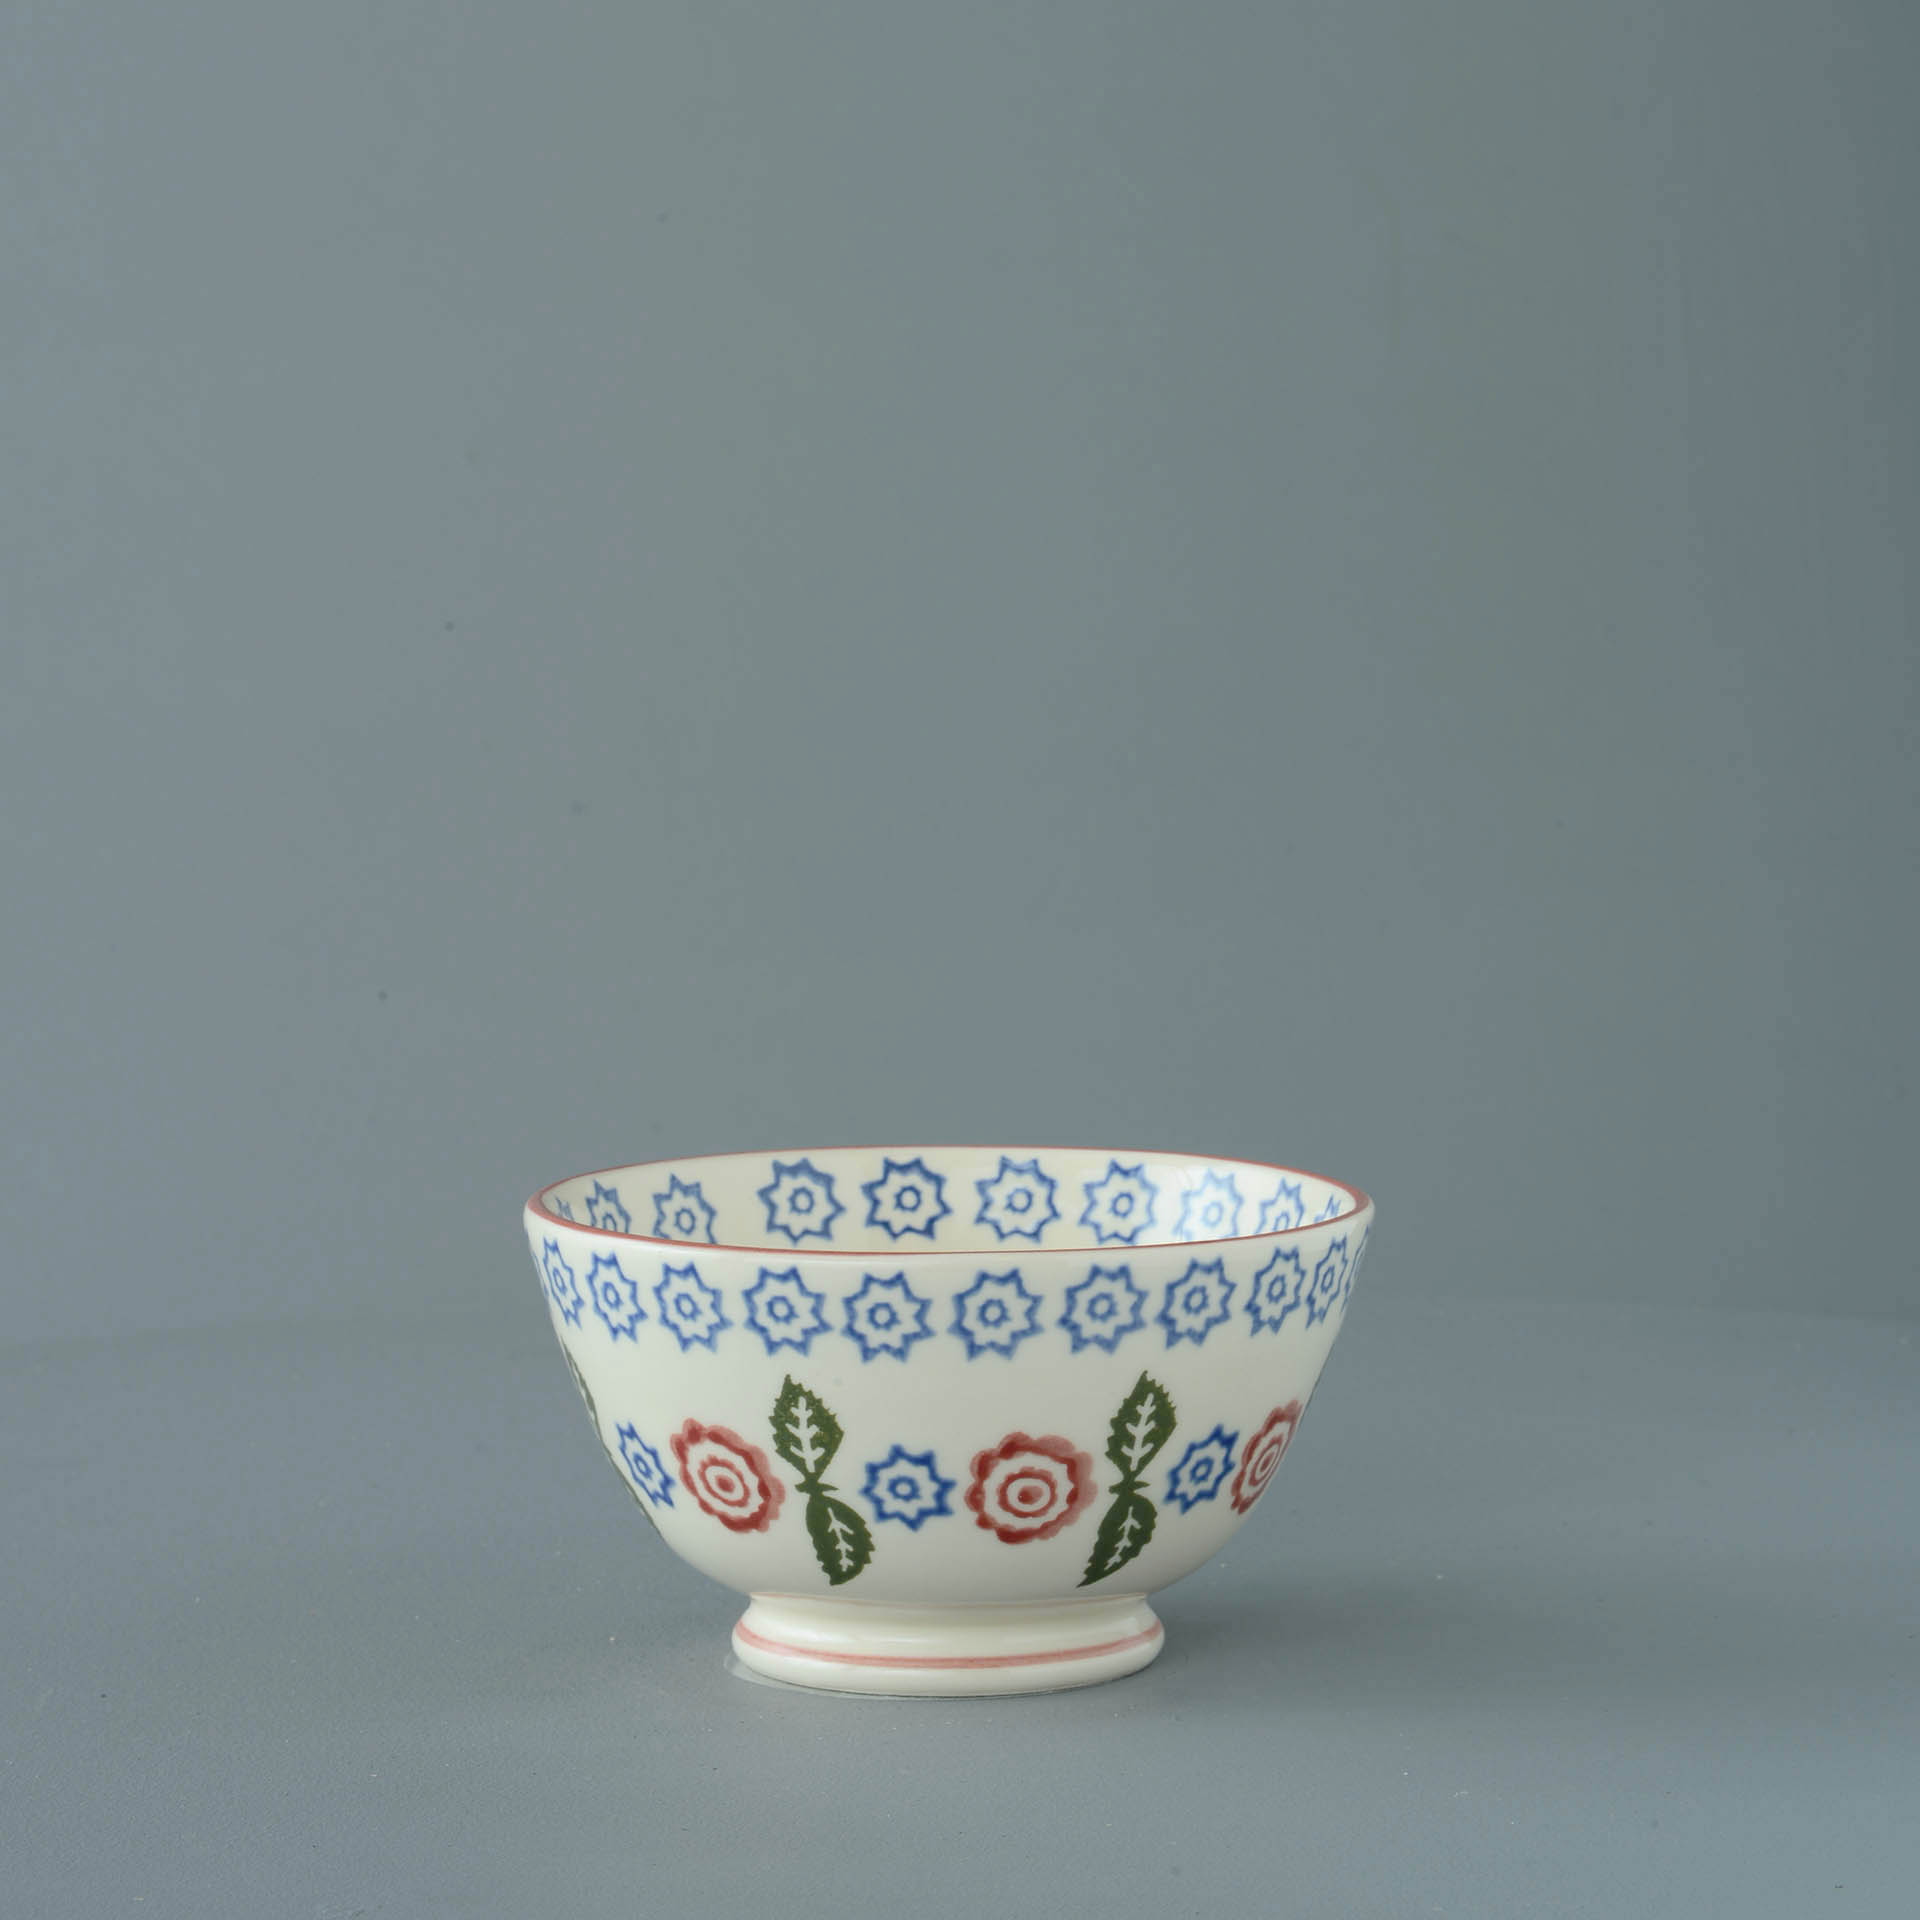 Victorian Floral Small Bowl 6.5 x 12 cm